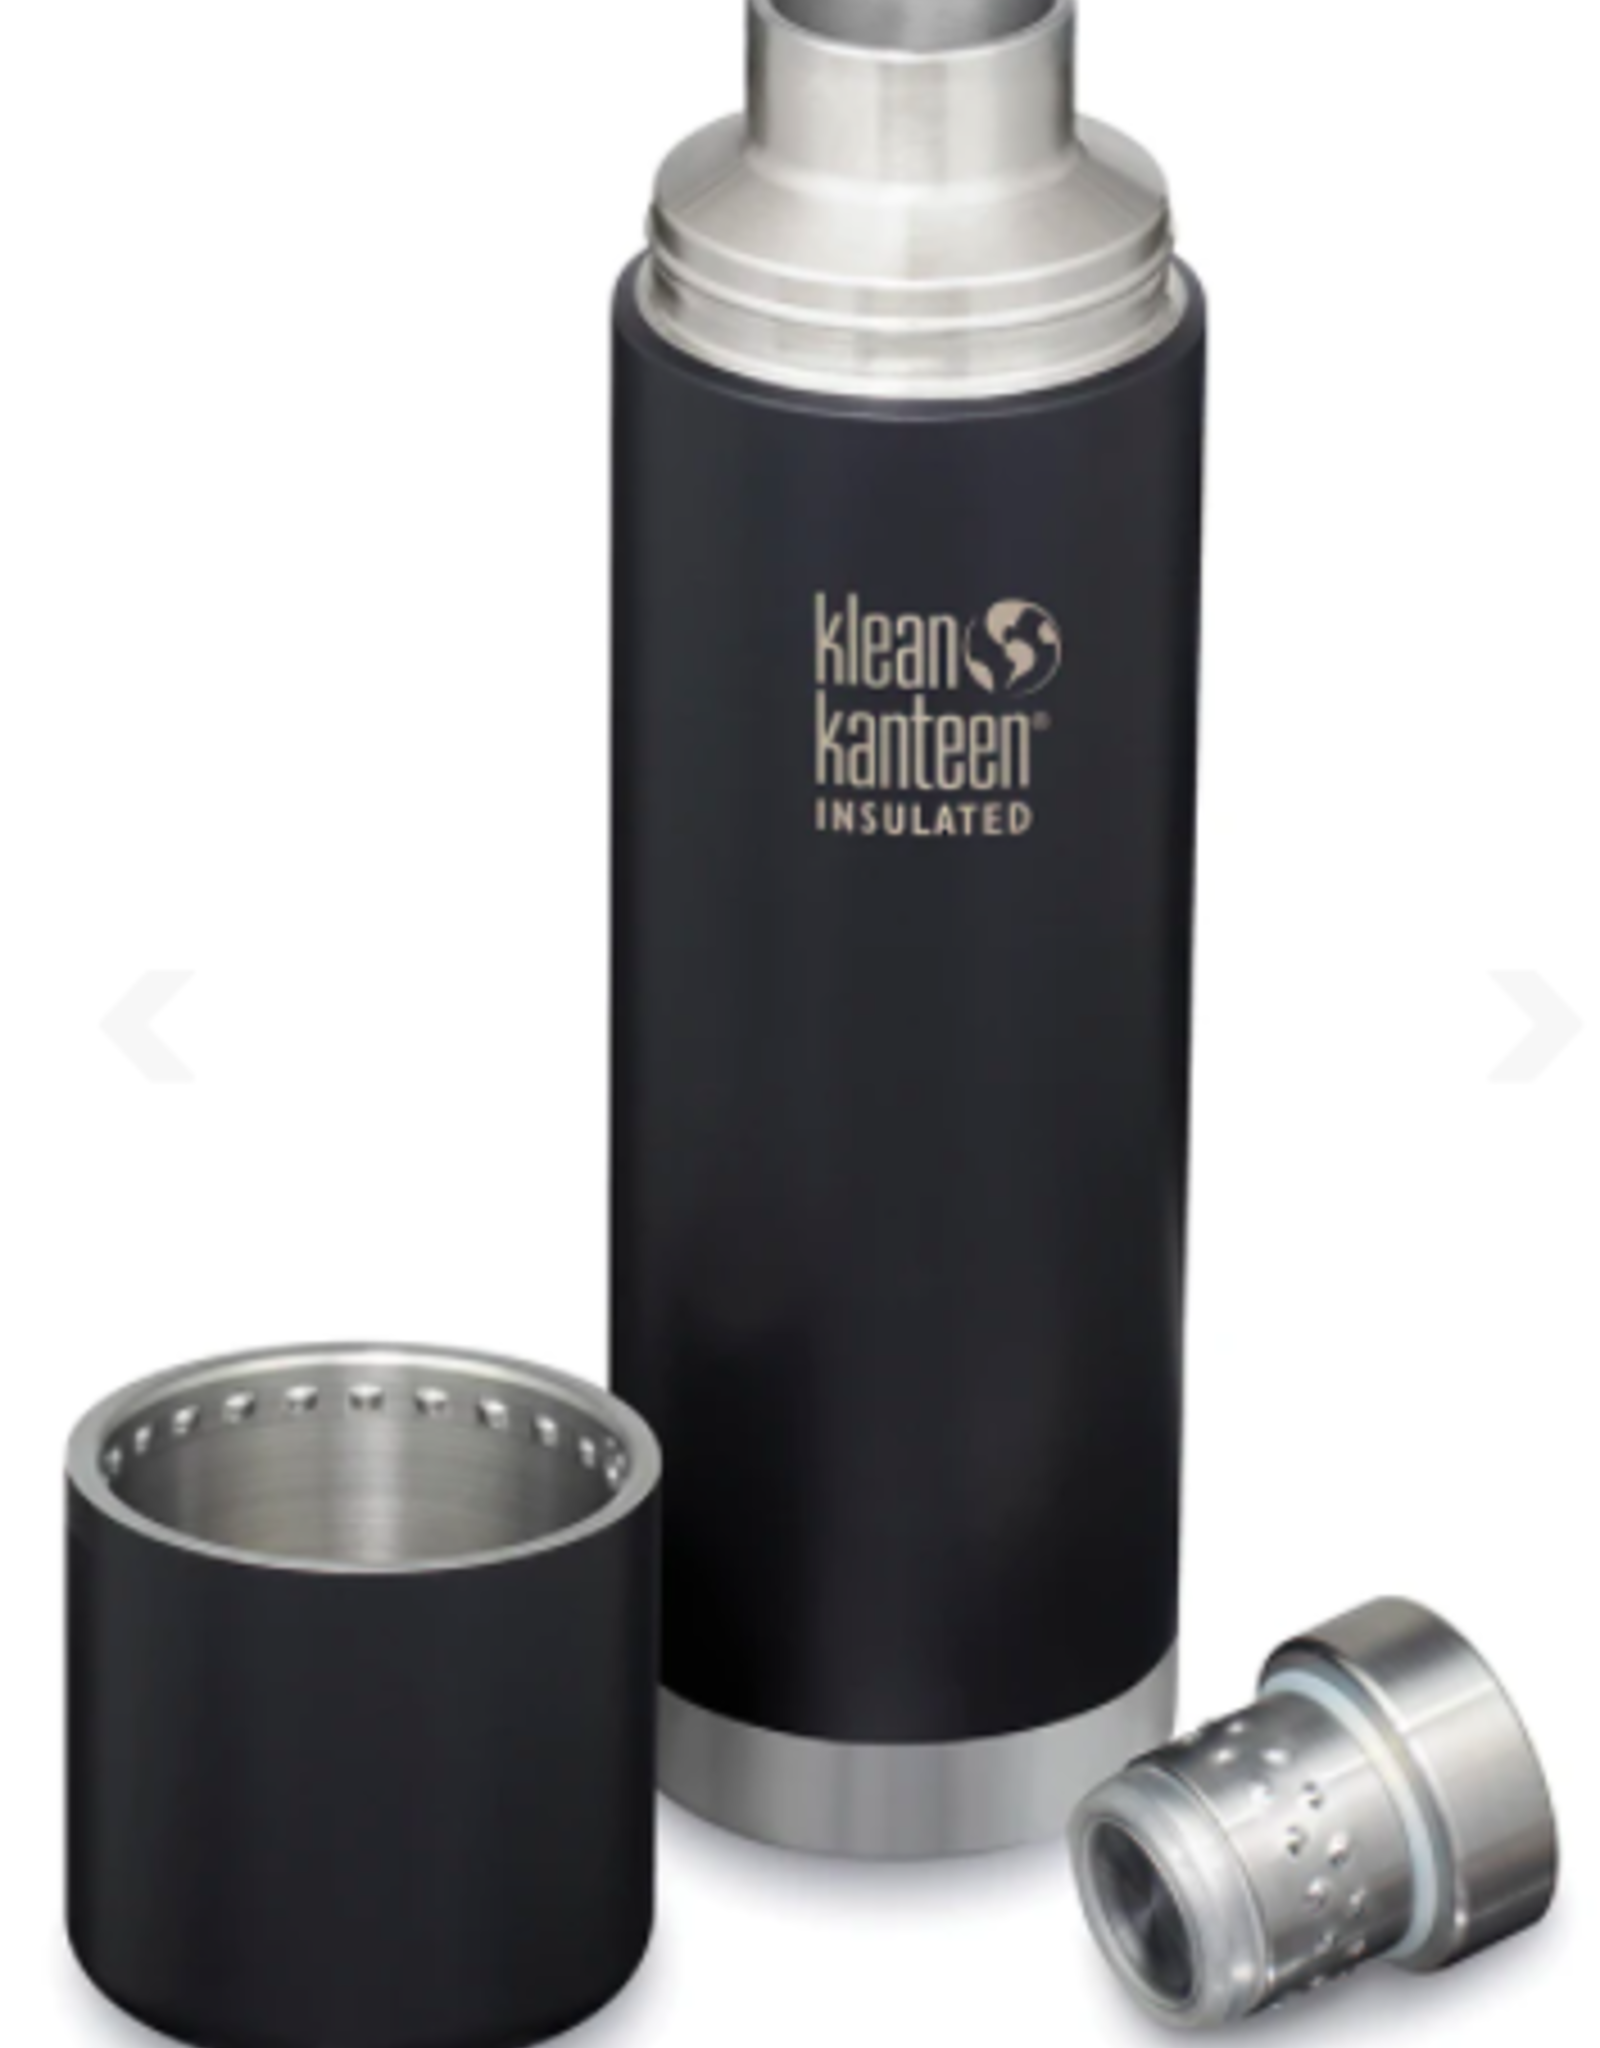 Klean Kanteen 32 oz. Insulated TKPro